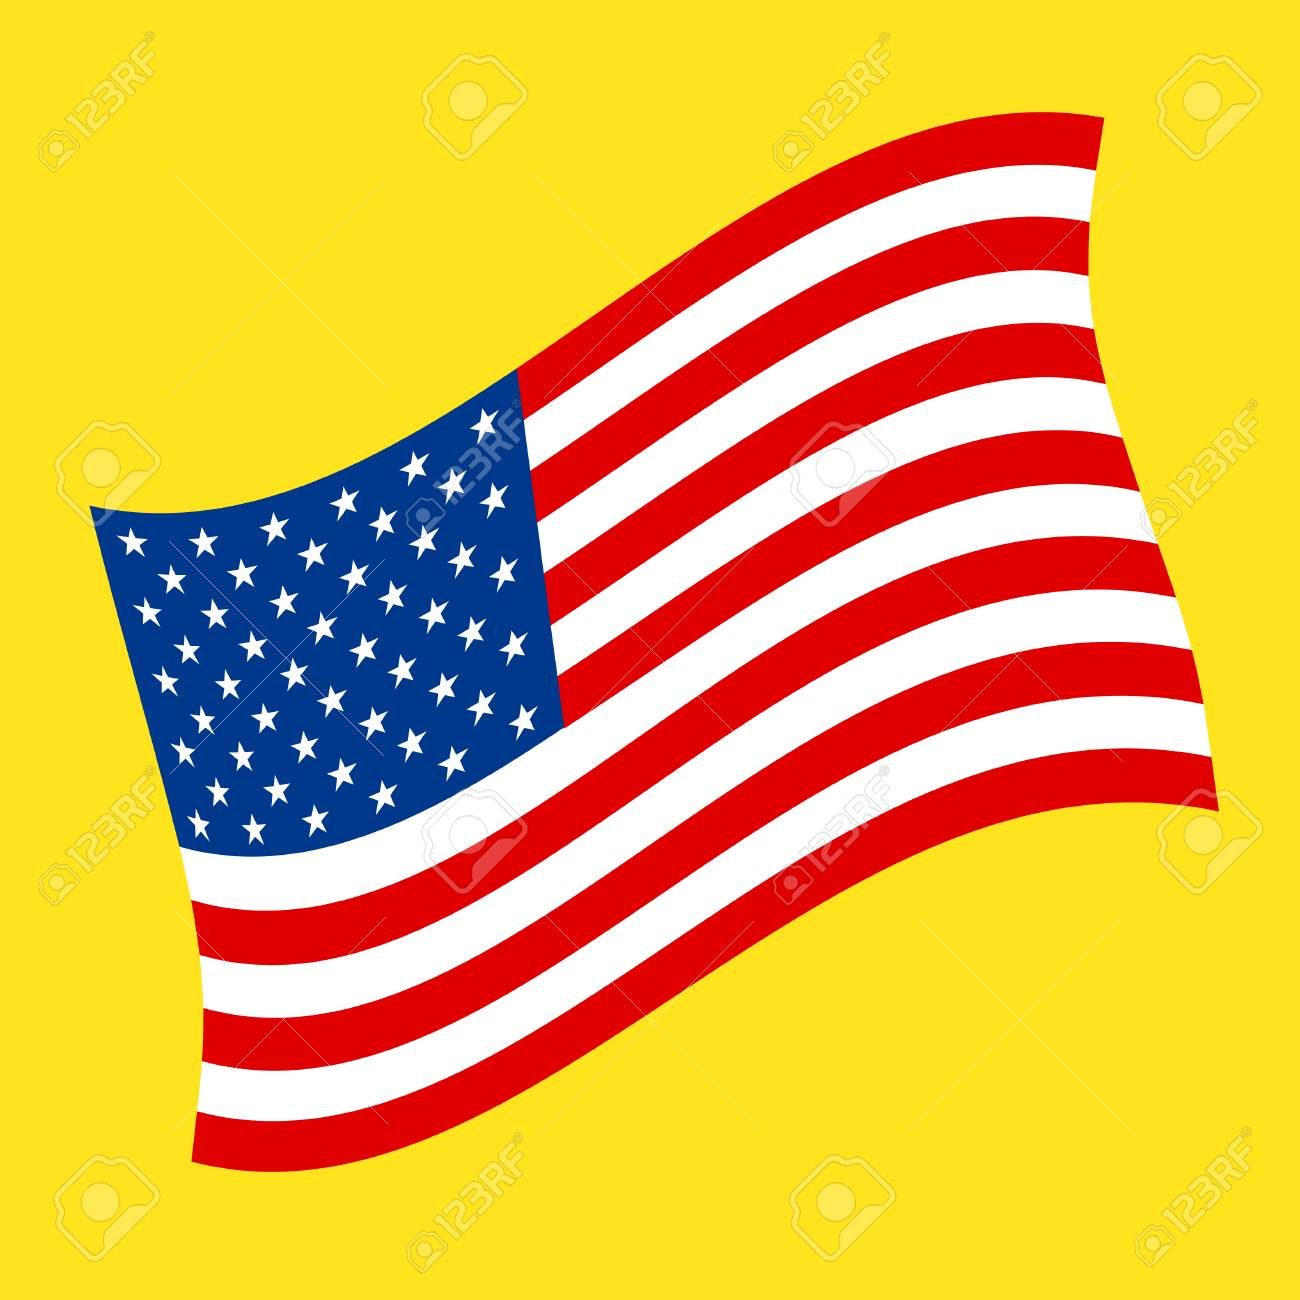 american flag vector icon royalty free cliparts vectors and stock rh 123rf com american flag vector artwork american flag vector art for photoshop